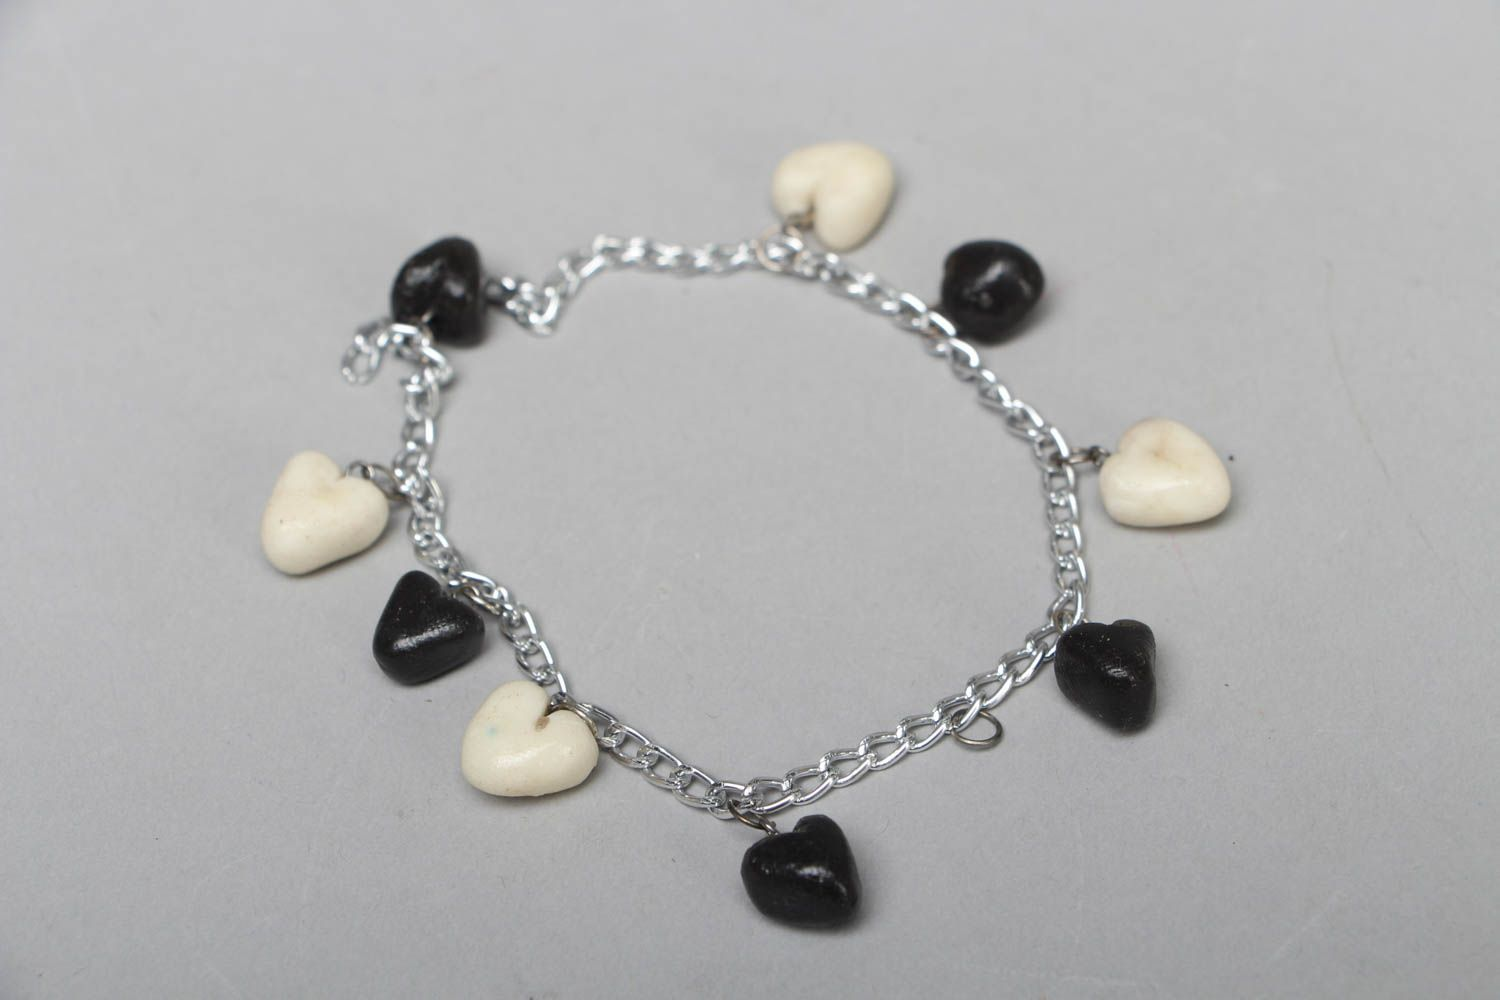 Polymer clay bracelet with heart-shaped charms photo 1